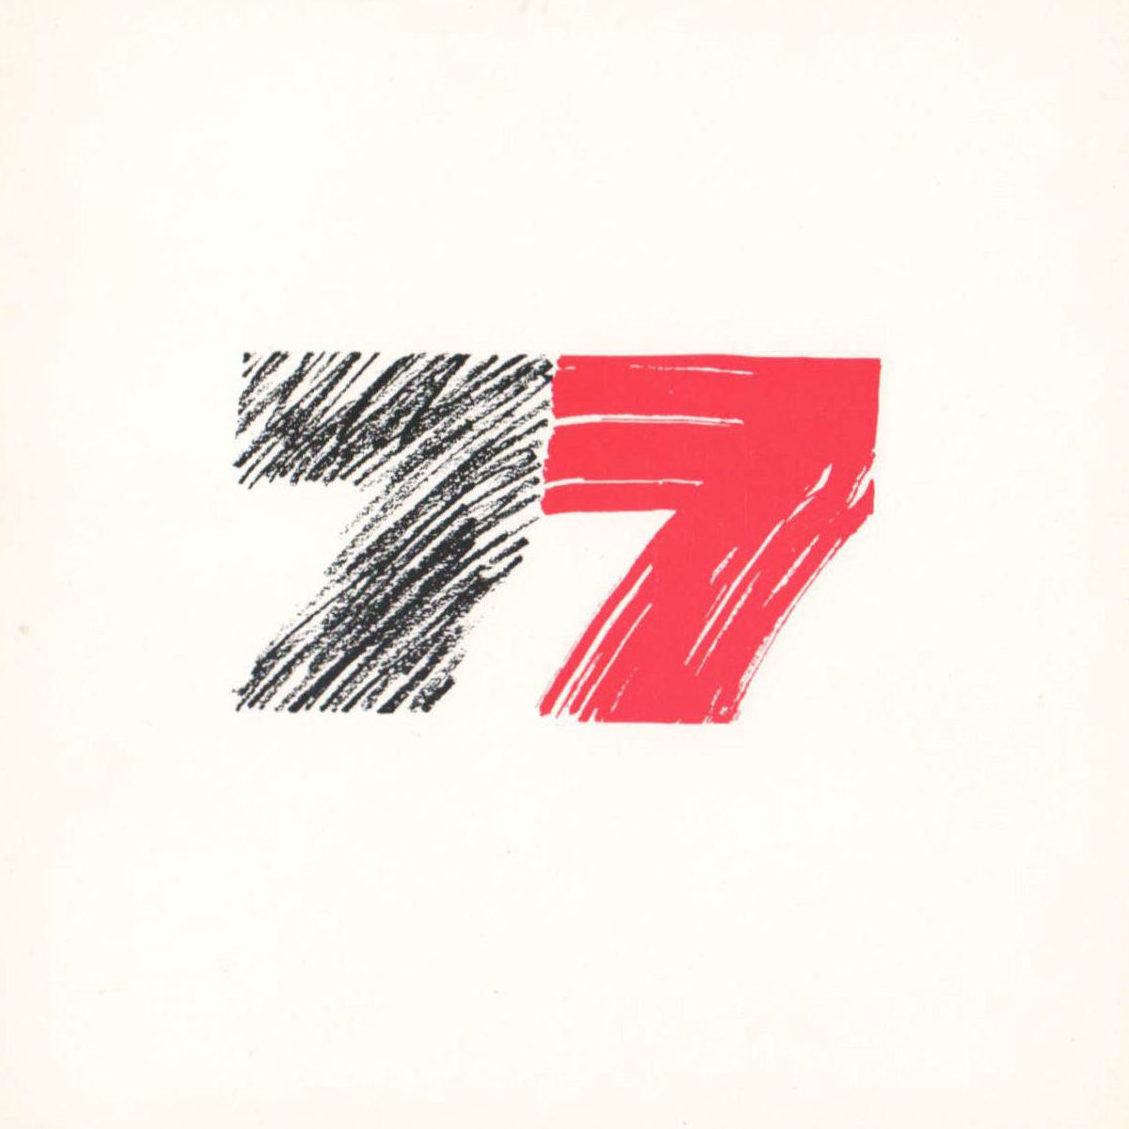 '77 Exhibition of Visual Arts Catalogue Cover